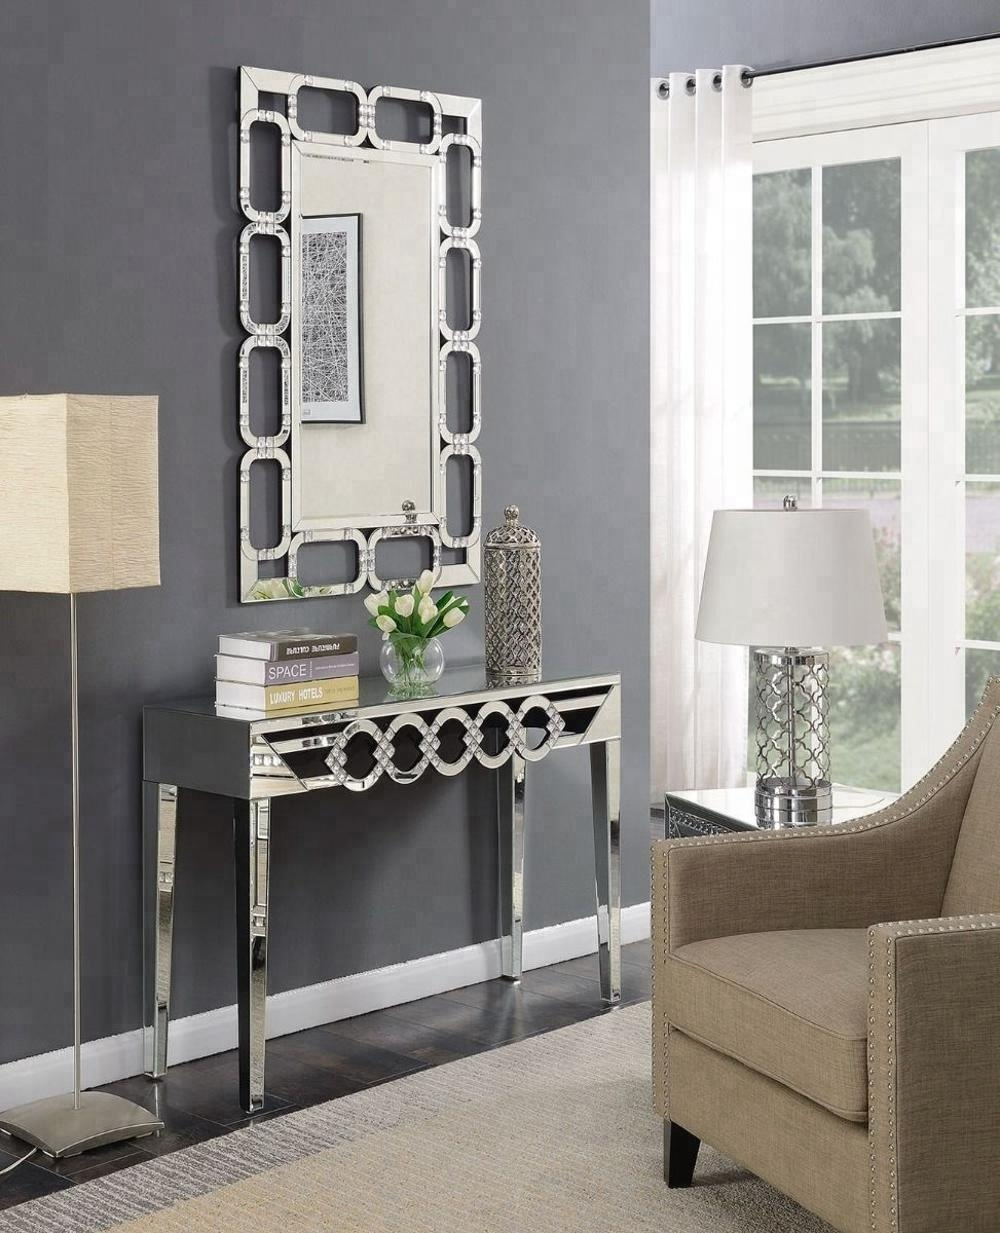 Modern Loughton Living Room Mirrored Furniture Console Table With Wall Mirror Buy Wall Mirror Luxury Console Table With Mirror Living Room Table With Mirror Product On Alibaba Com